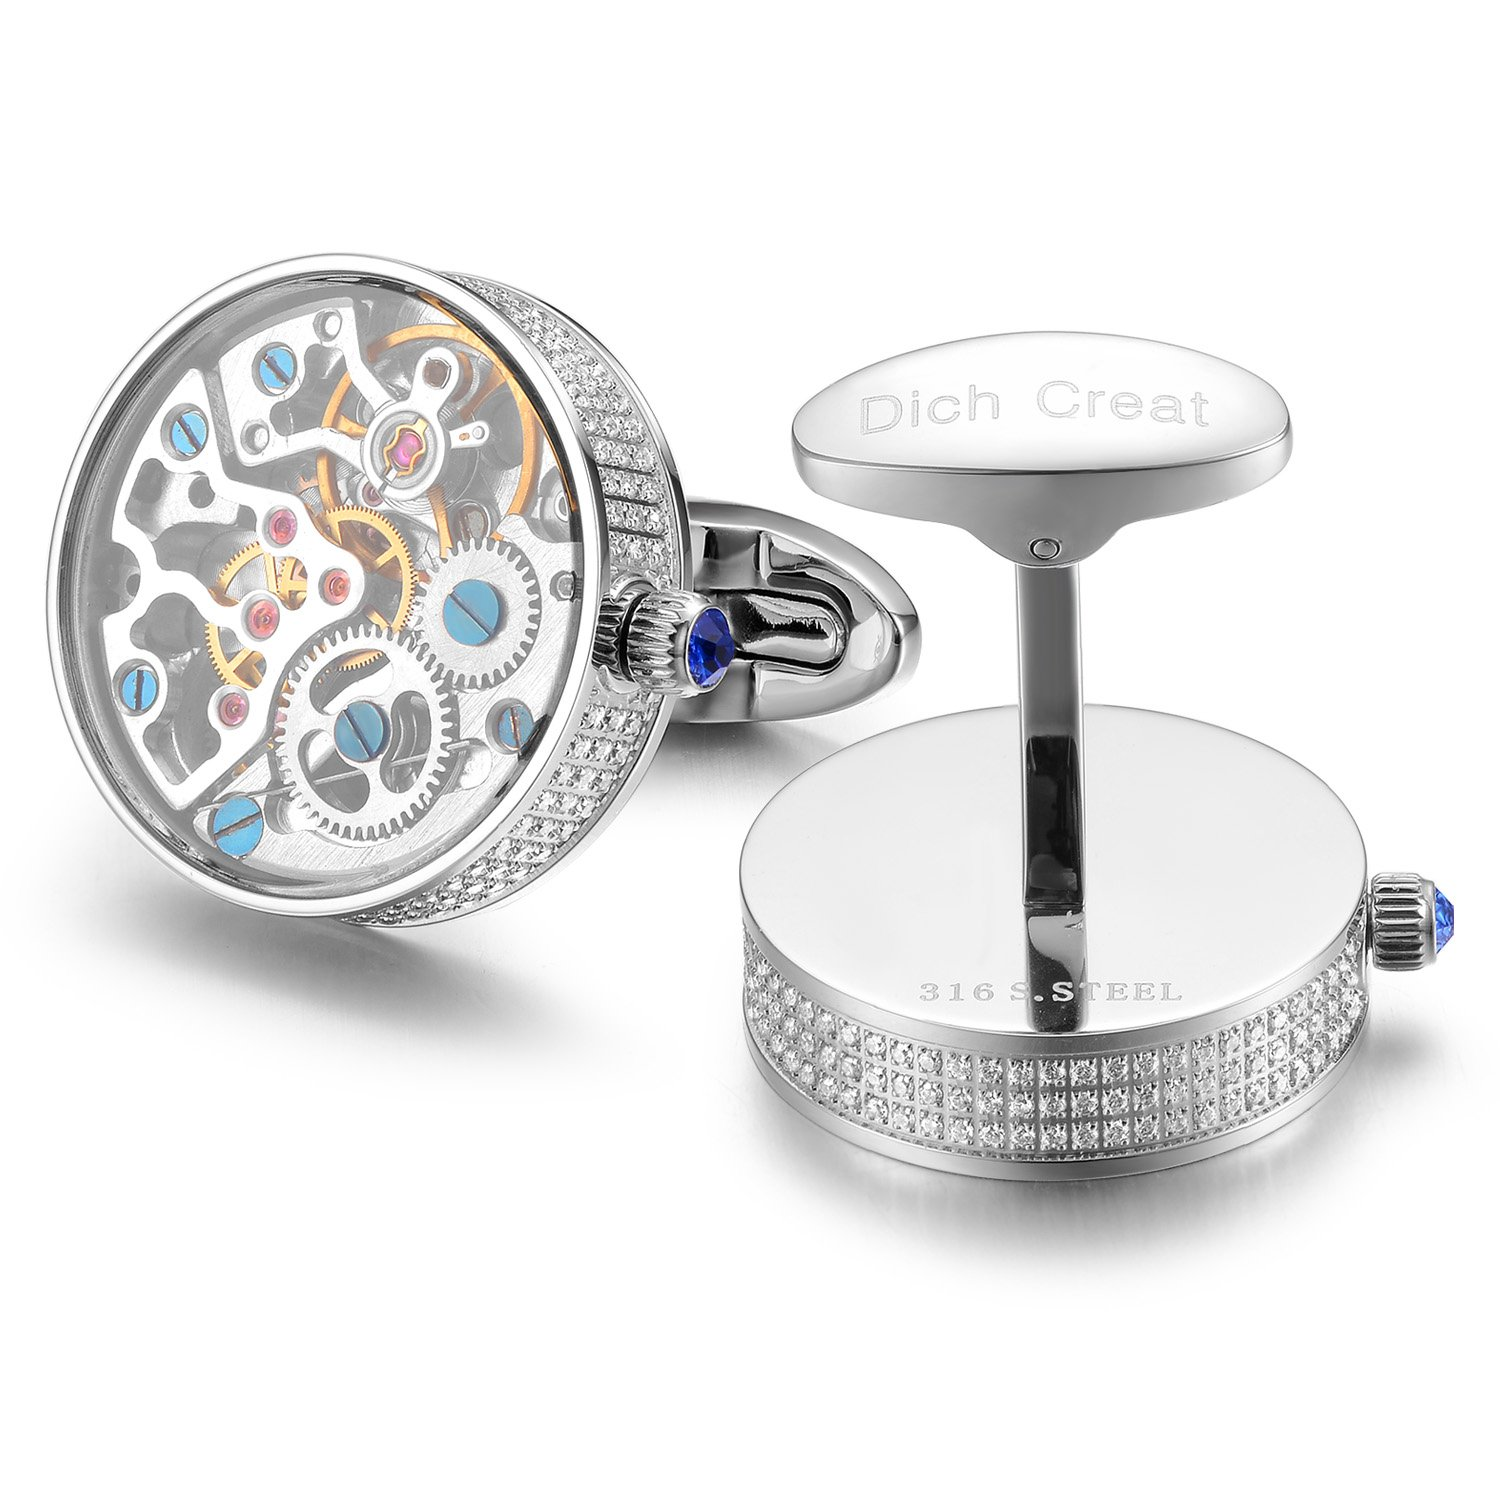 Dich Creat Rhodium Plated Hand Made Inlay Jewels Watch Movement Cufflinks Covered With Glass